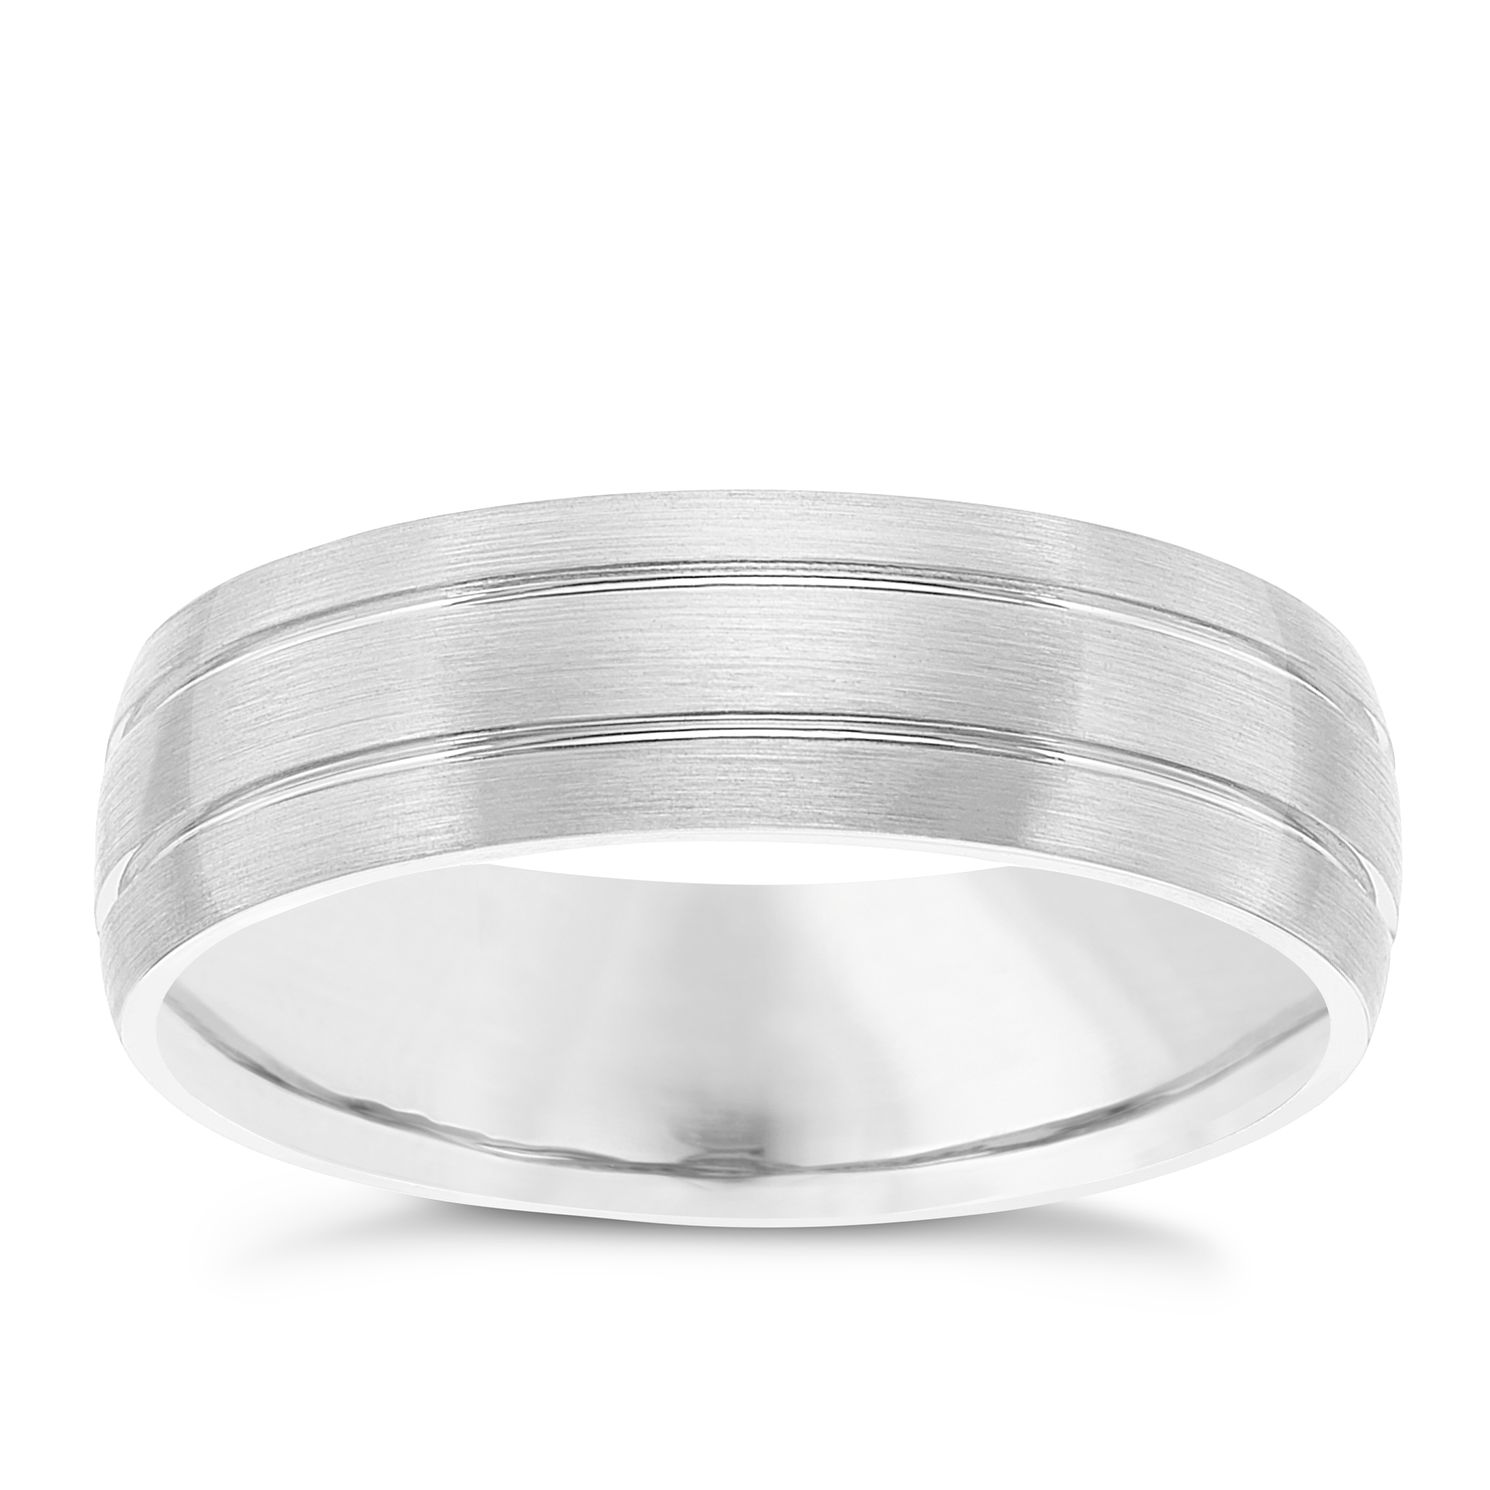 Palladium 950 Striped 6mm Band - Product number 6092497